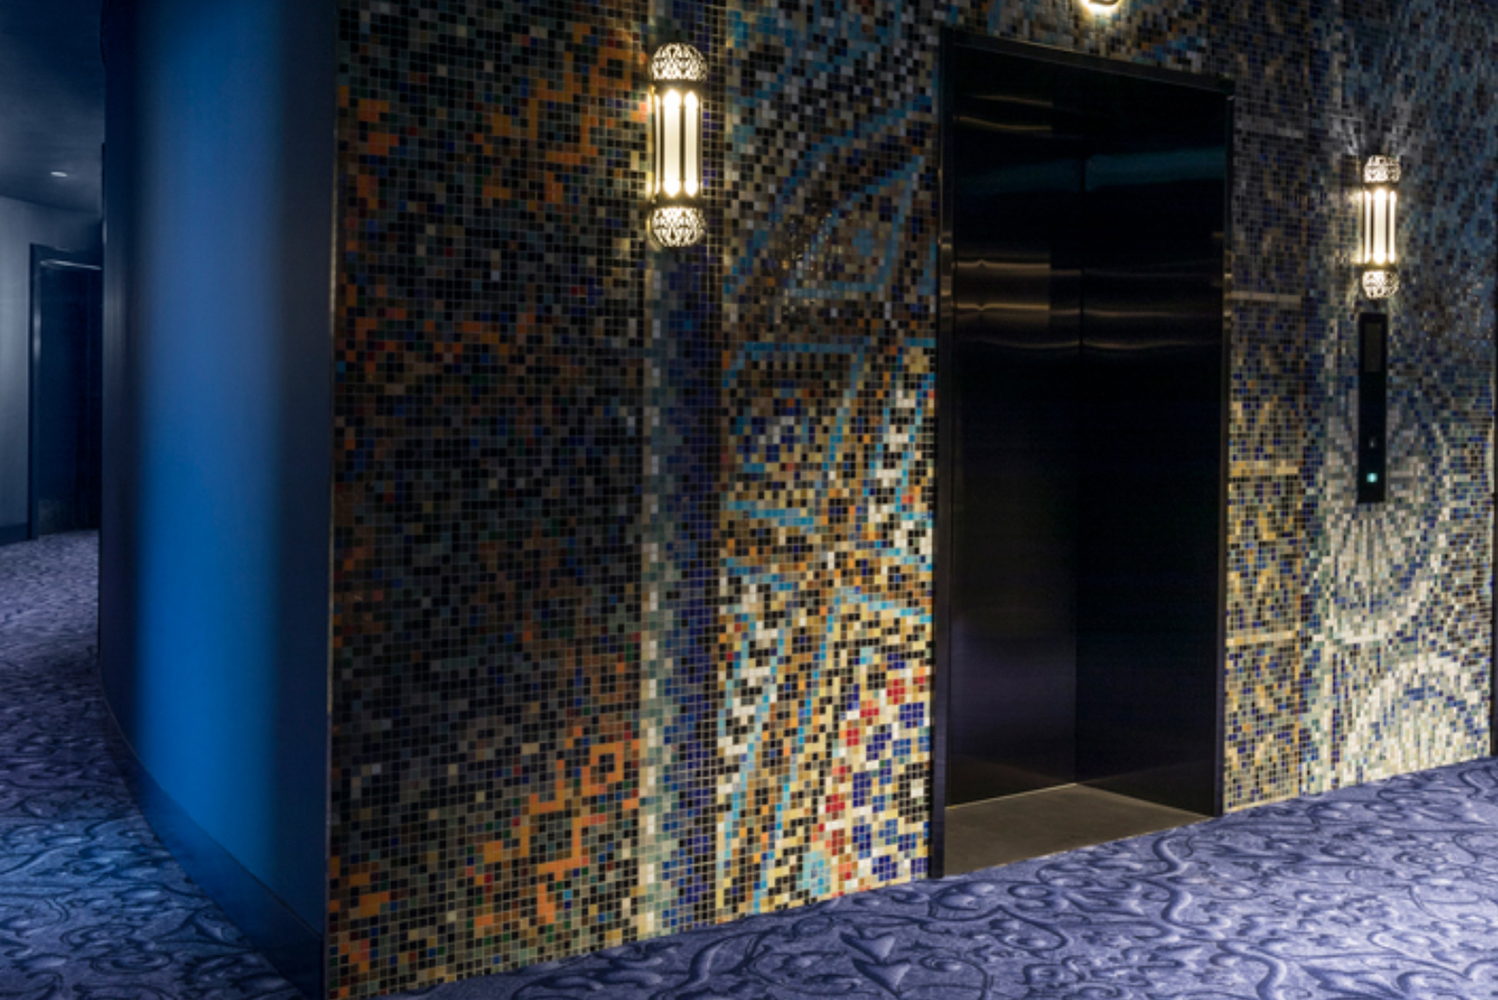 Hospitality company sbe opened Mondrian Doha, marking the luxury hotel brand's first property in the Middle East.